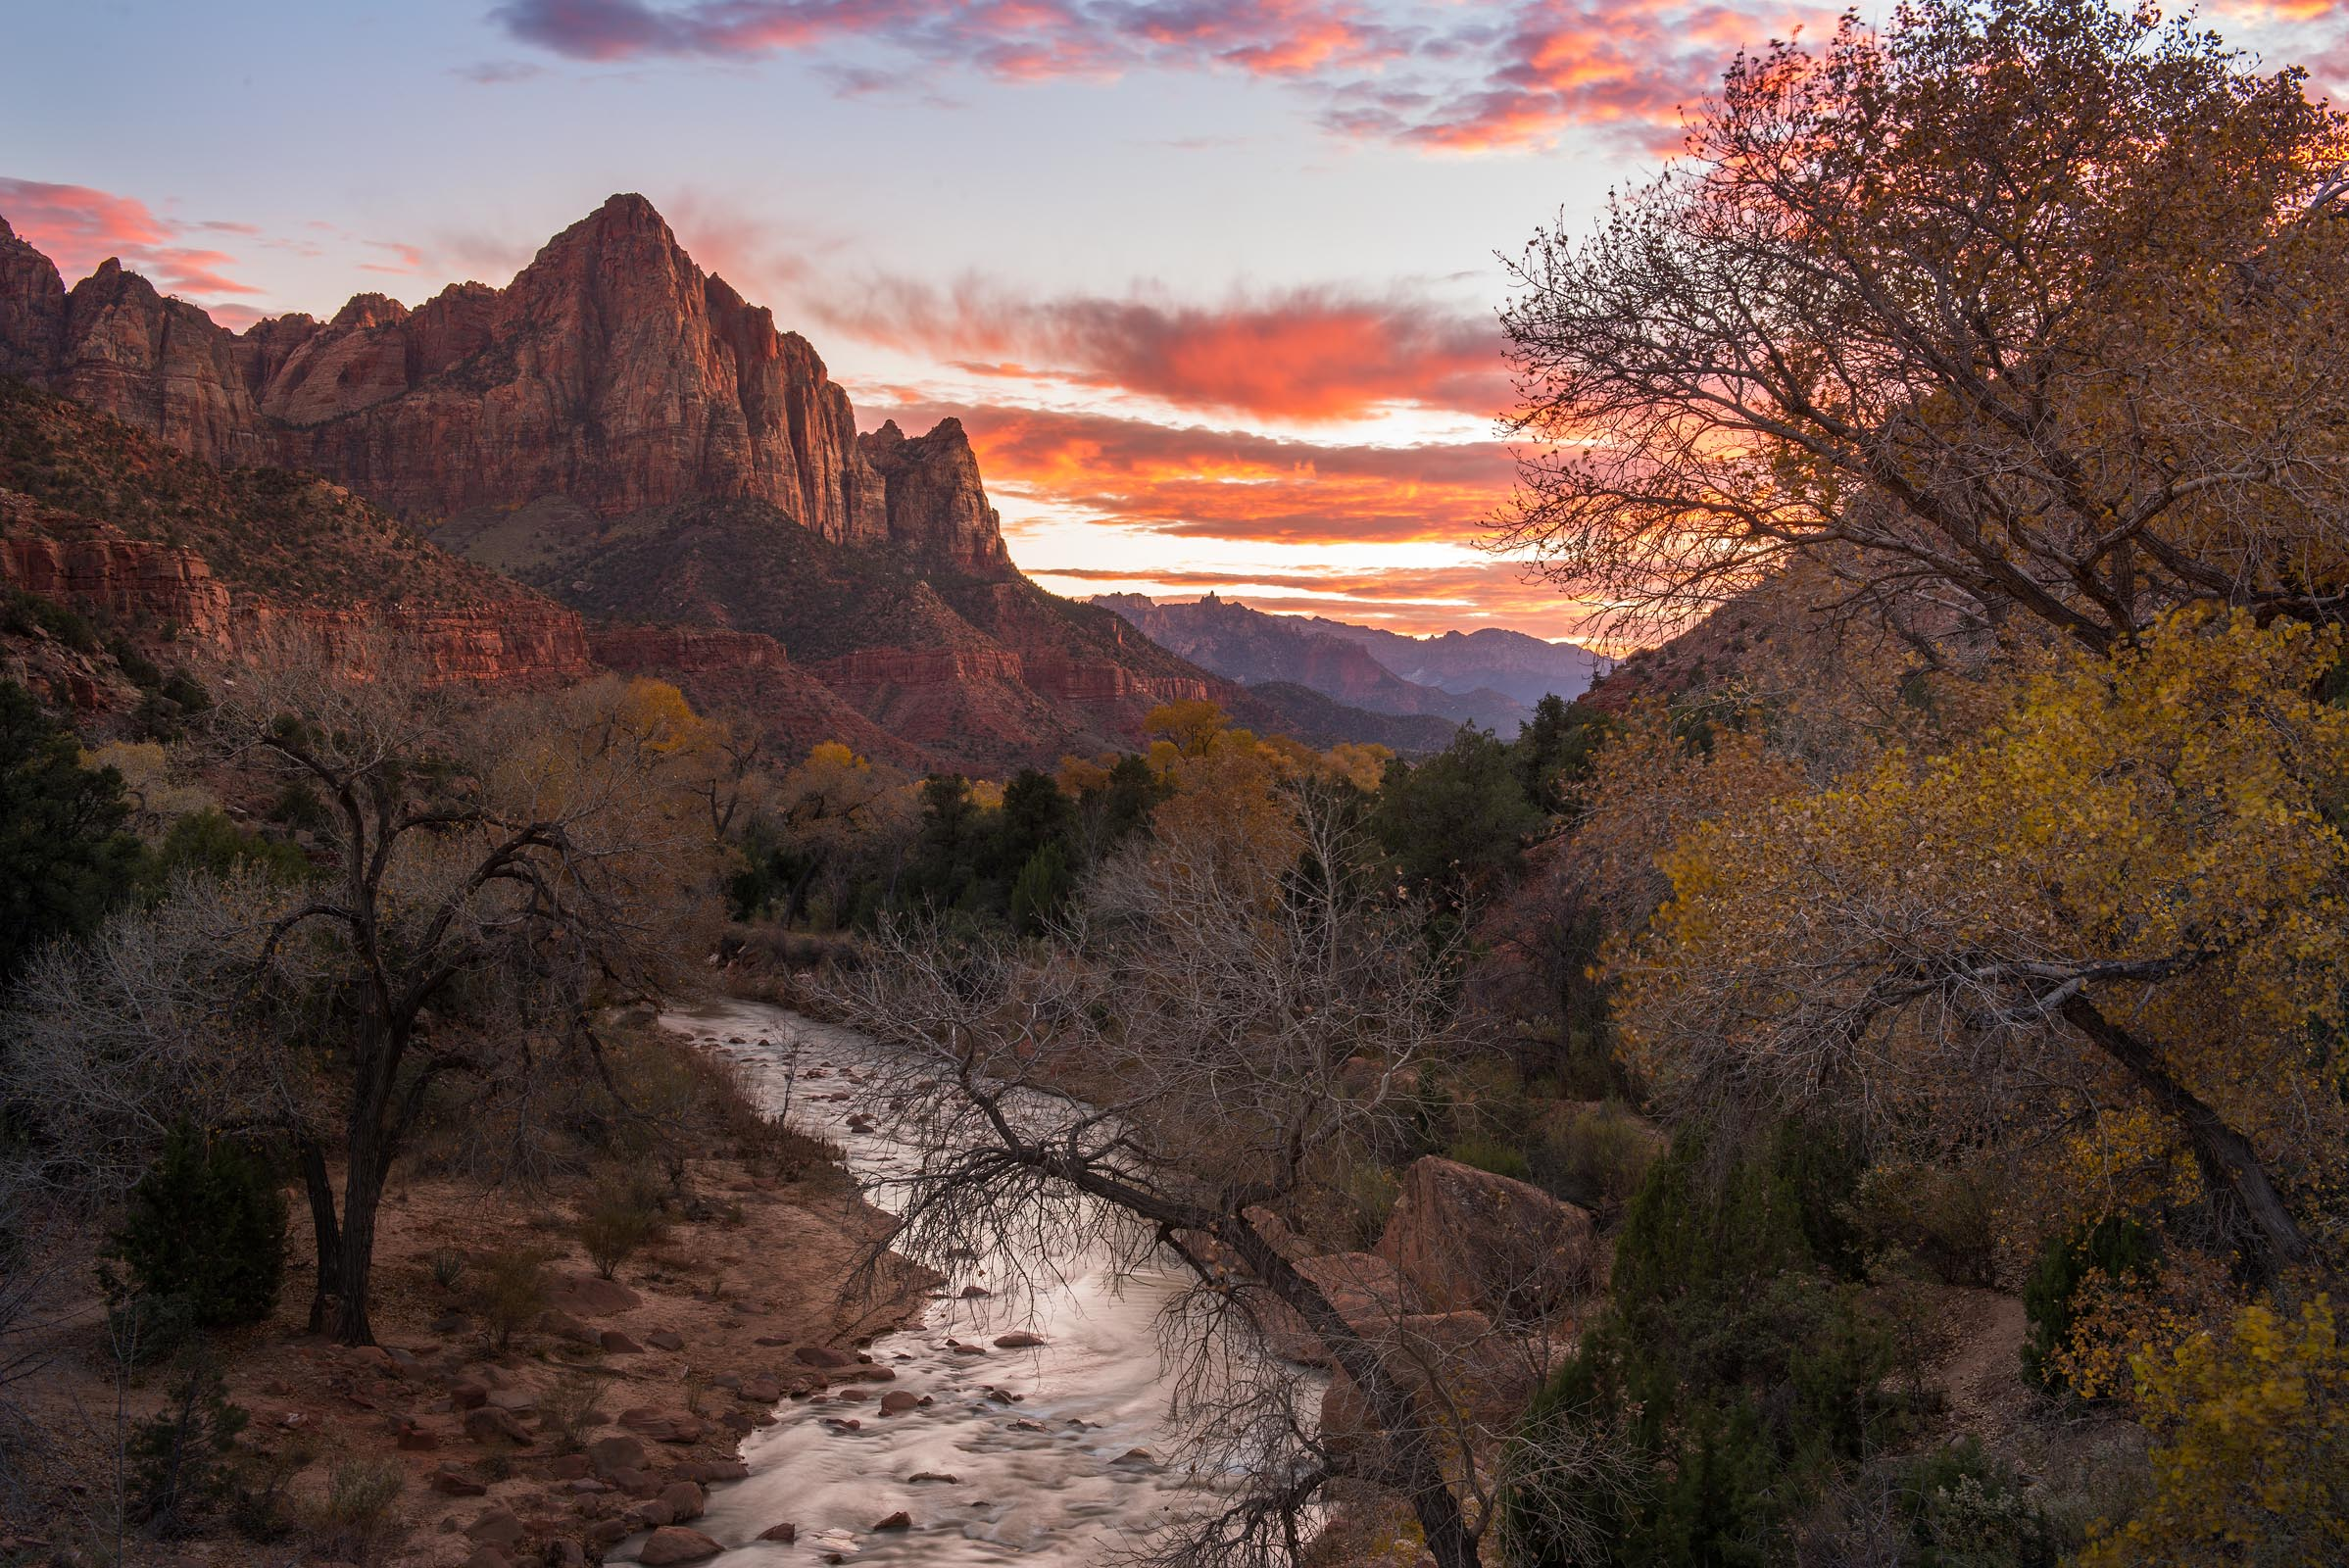 Photograph of Watchman in Zion, Utah by Brent Goldman Photography